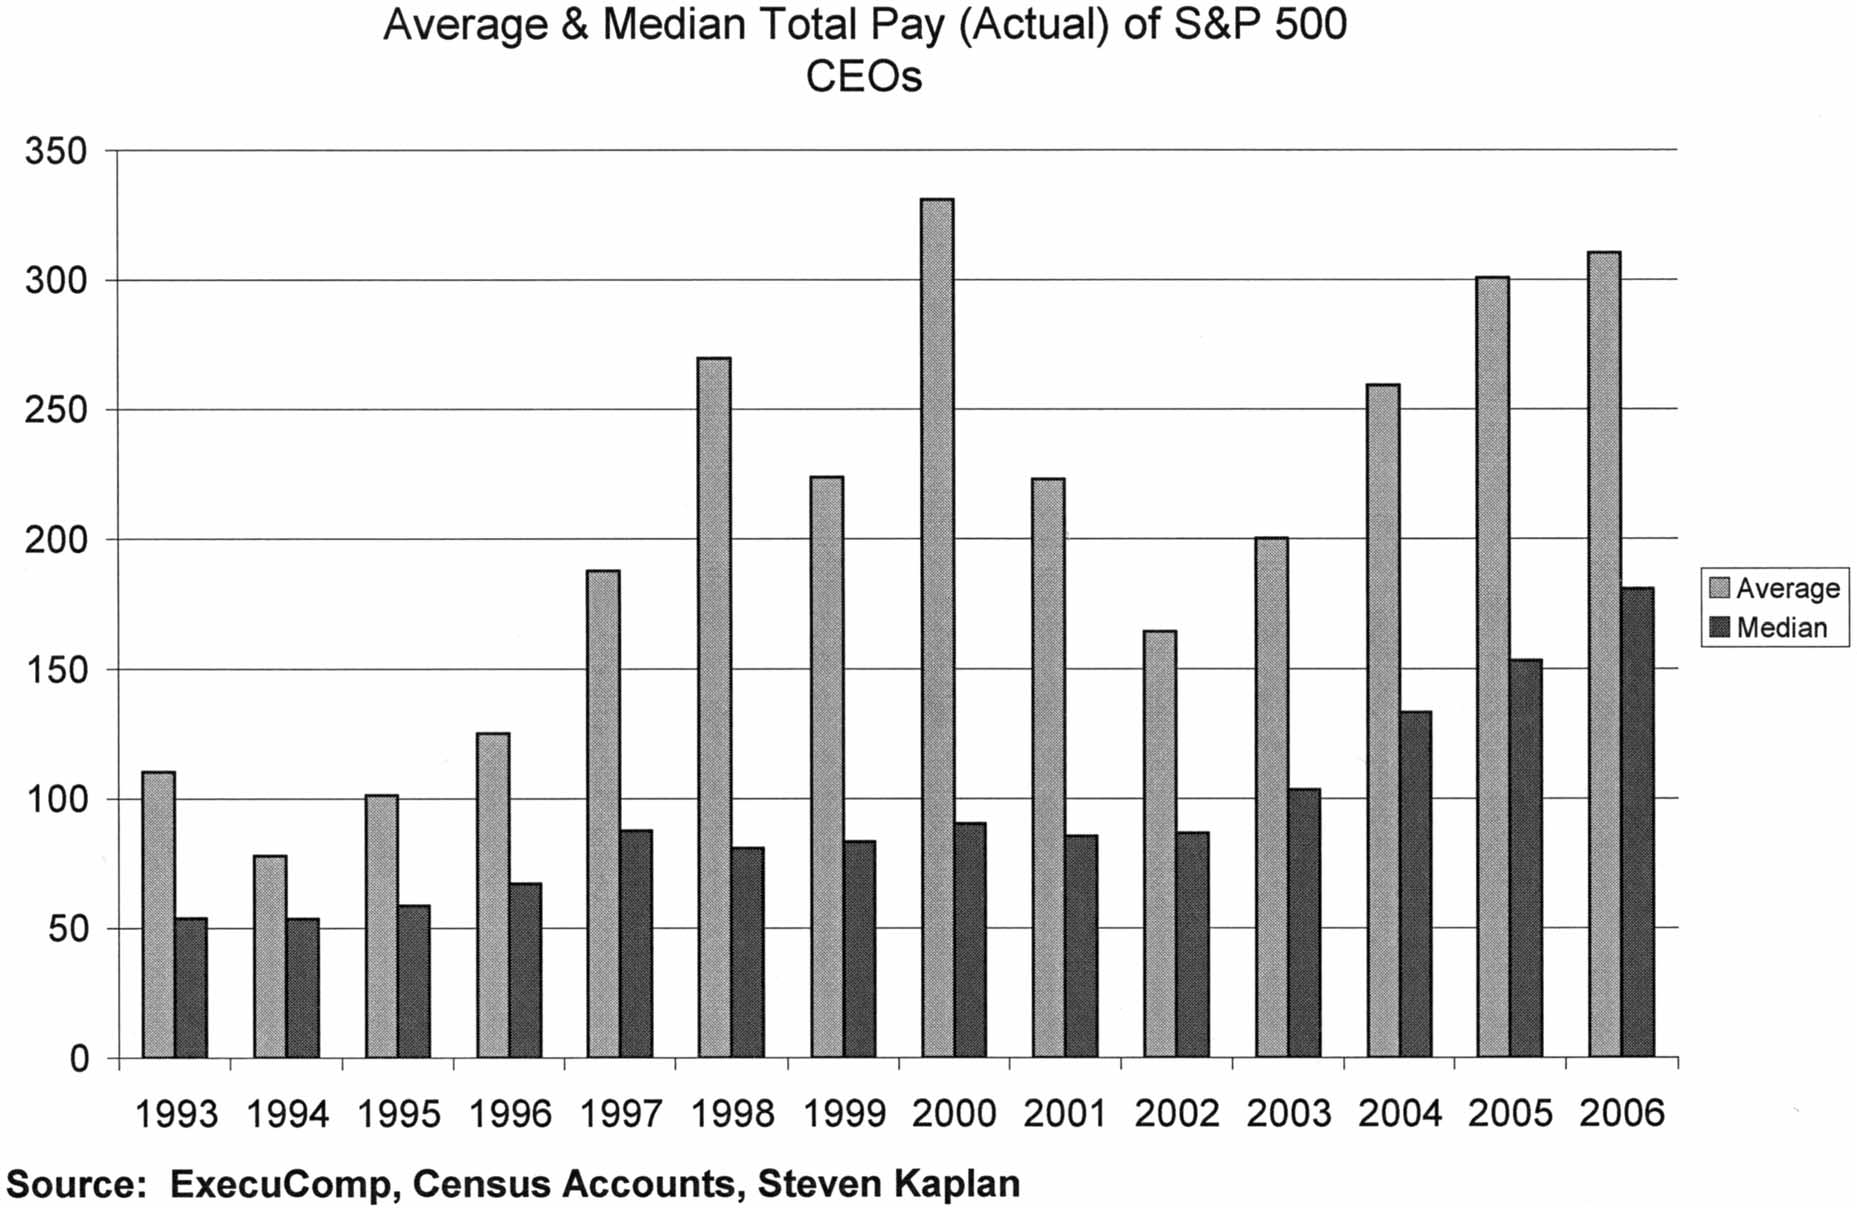 6 Academy of Management Perspectives May Figure 4 household income. Again, average and median CEO pay peaked in 2000 and 2001. Average CEO pay peaked in 2000 at more than 300 times the median U.S.